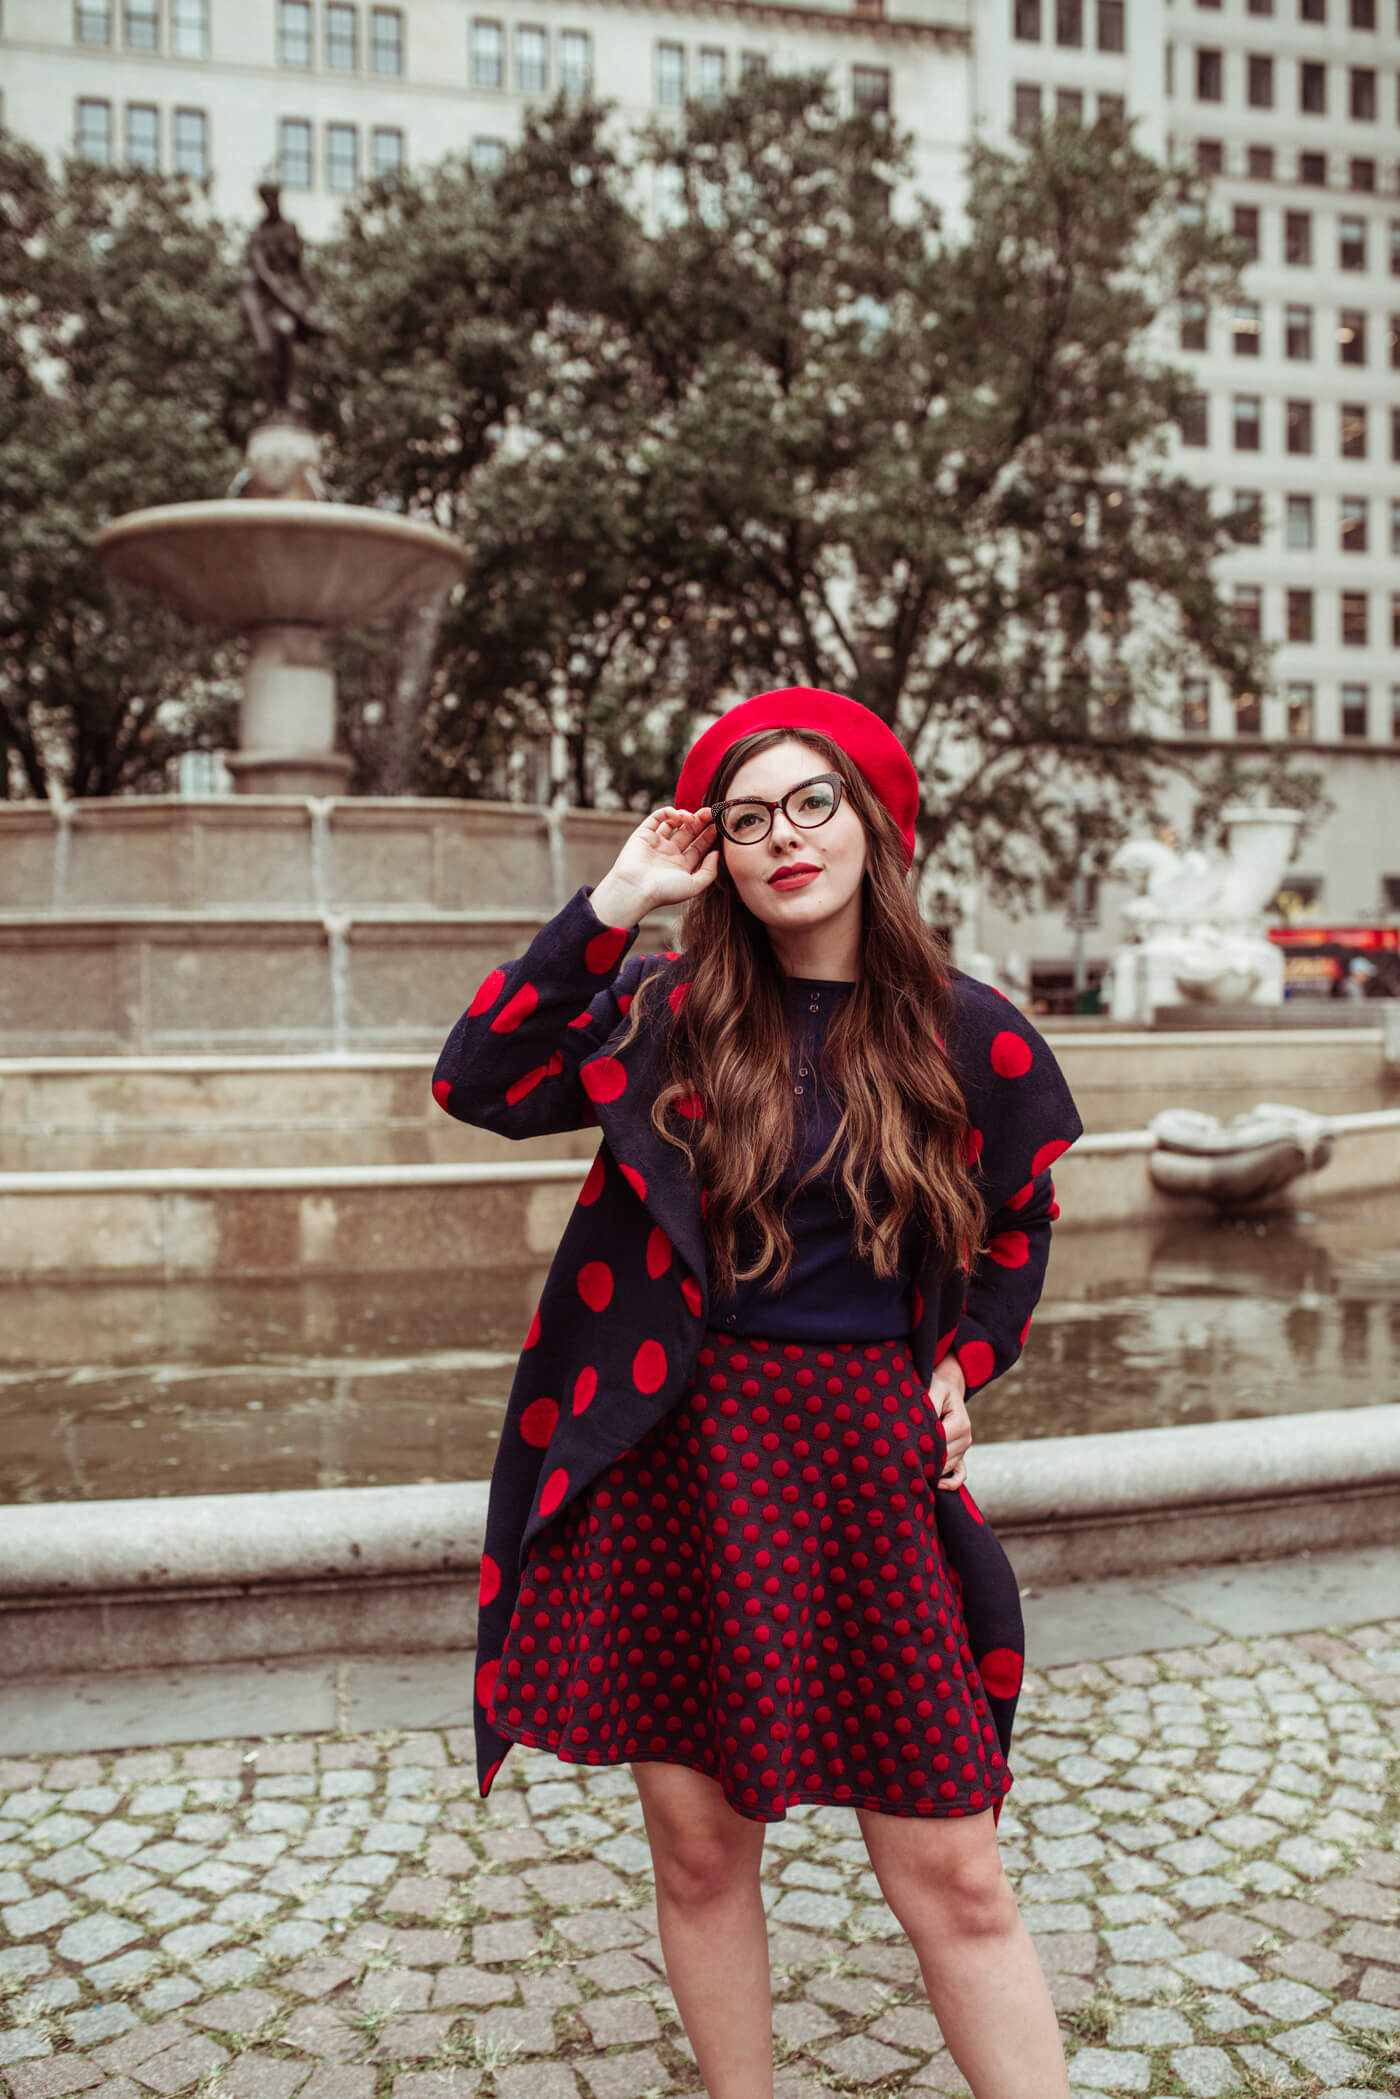 modcloth fall outfit ideas, 60s inspired outfit